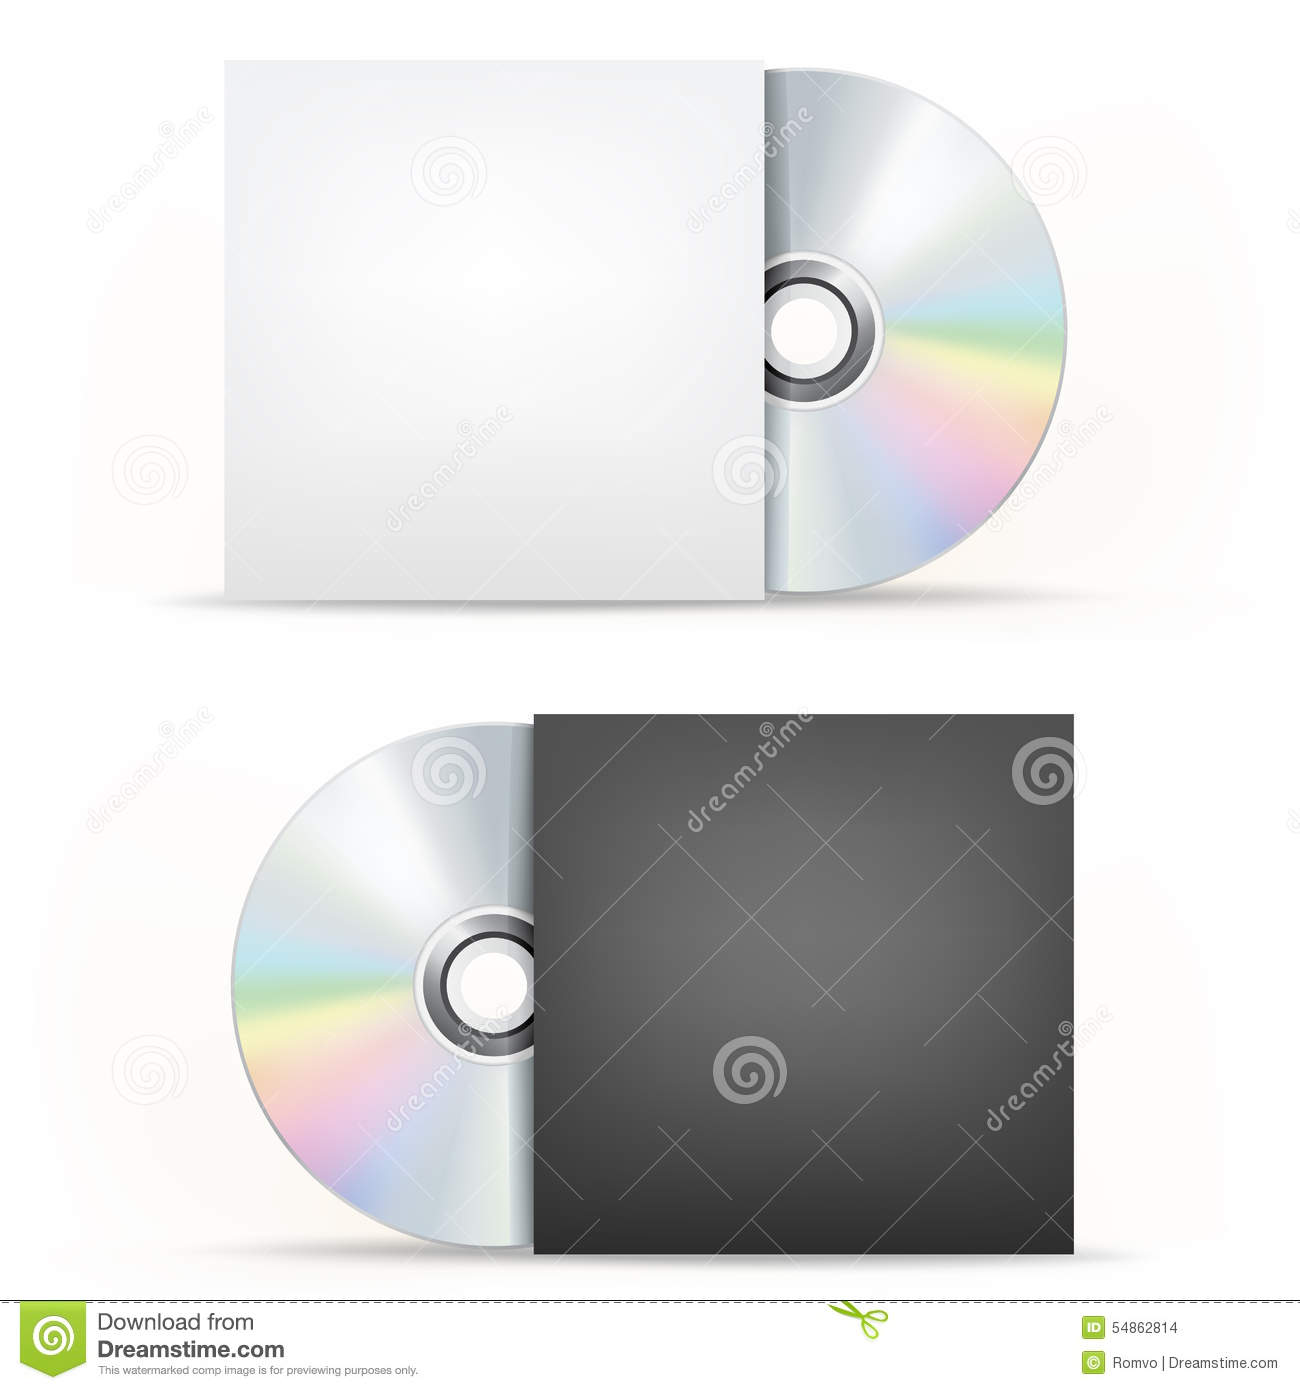 CD-DVD disc and cover